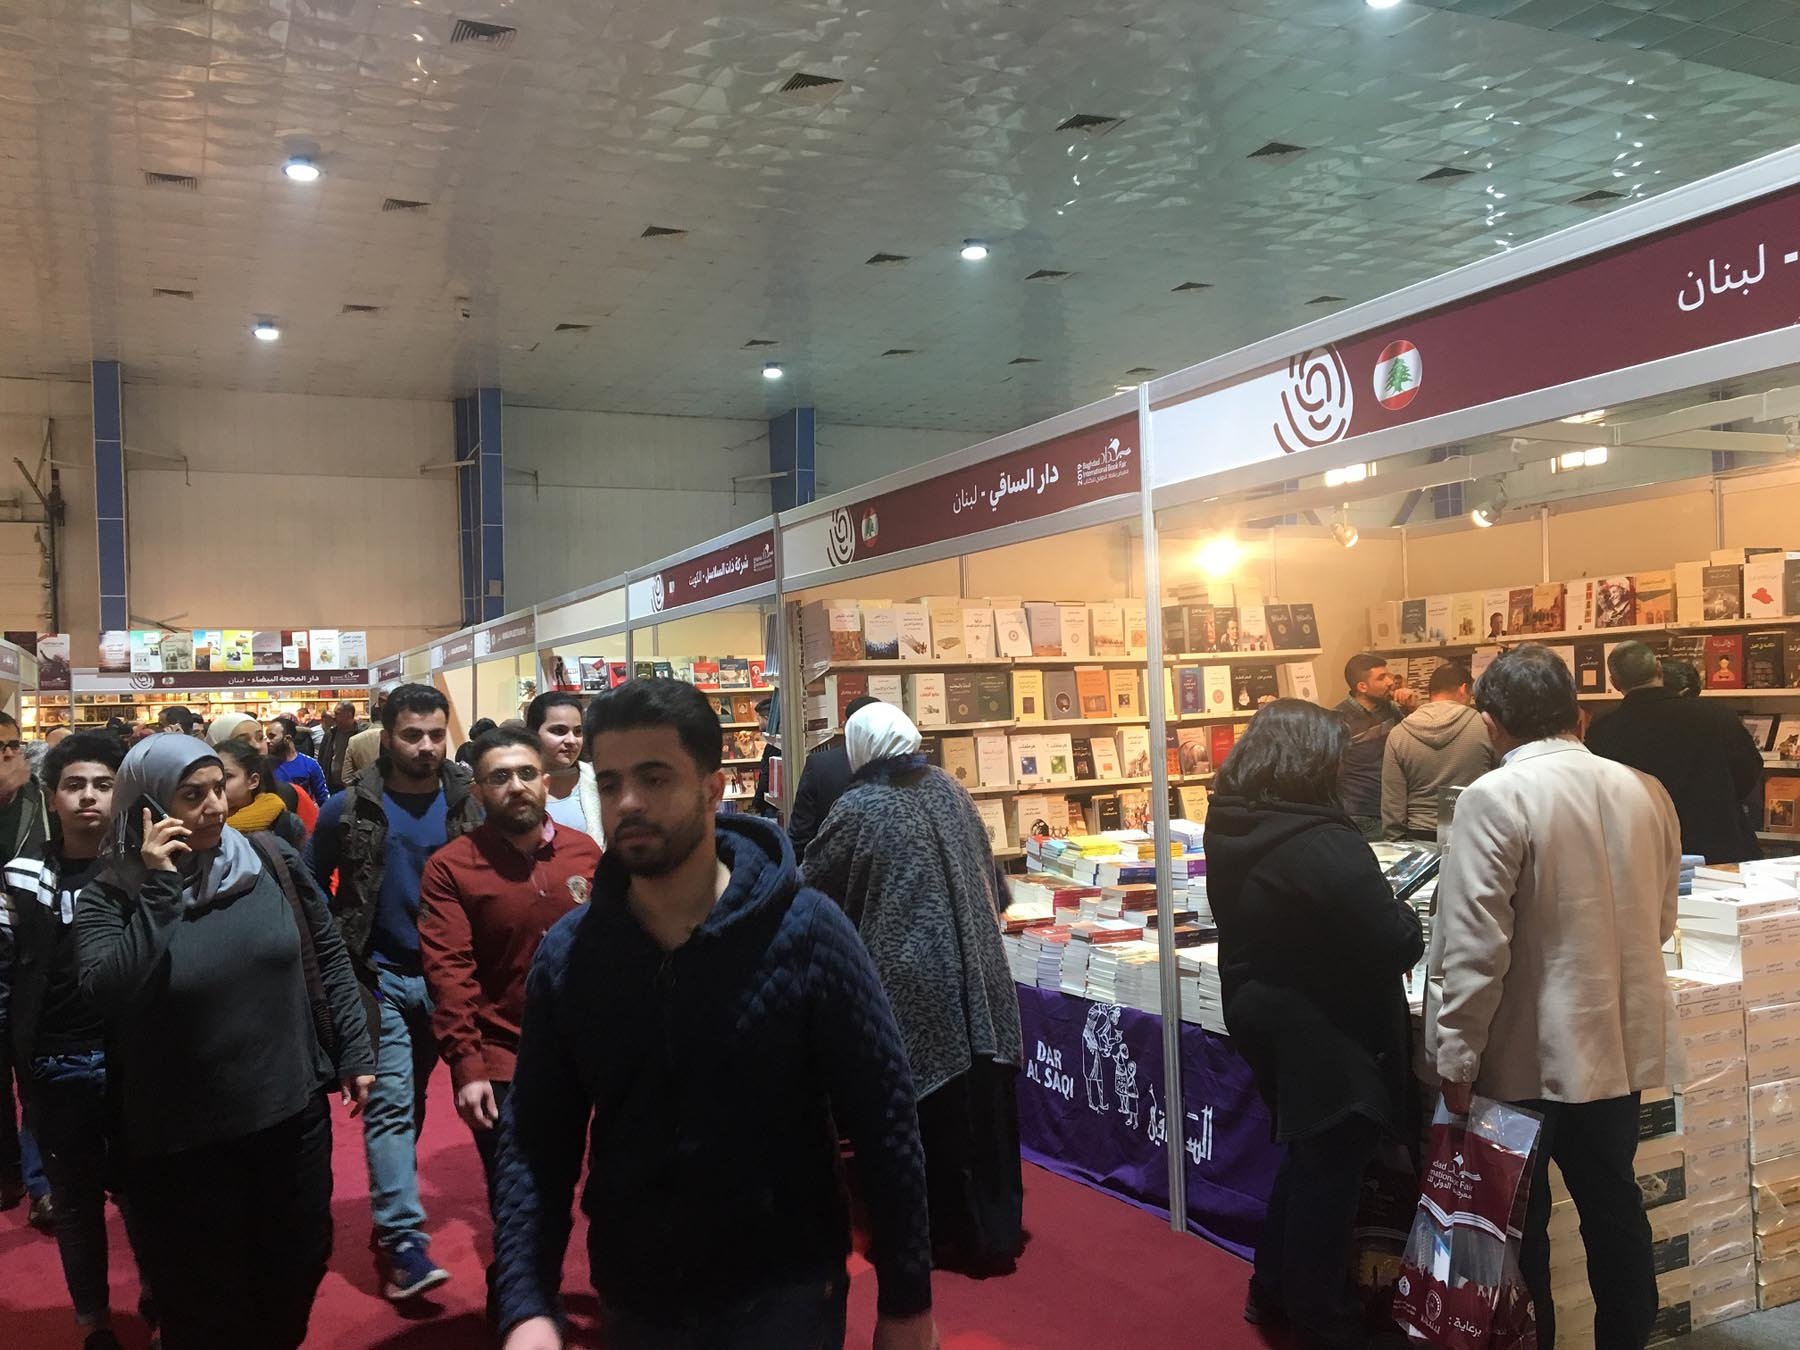 Visitors walk past the pavilion of Lebanon's Dar al Saqi publishing house at the Baghdad International Book Fair. (Oumayma Omar)